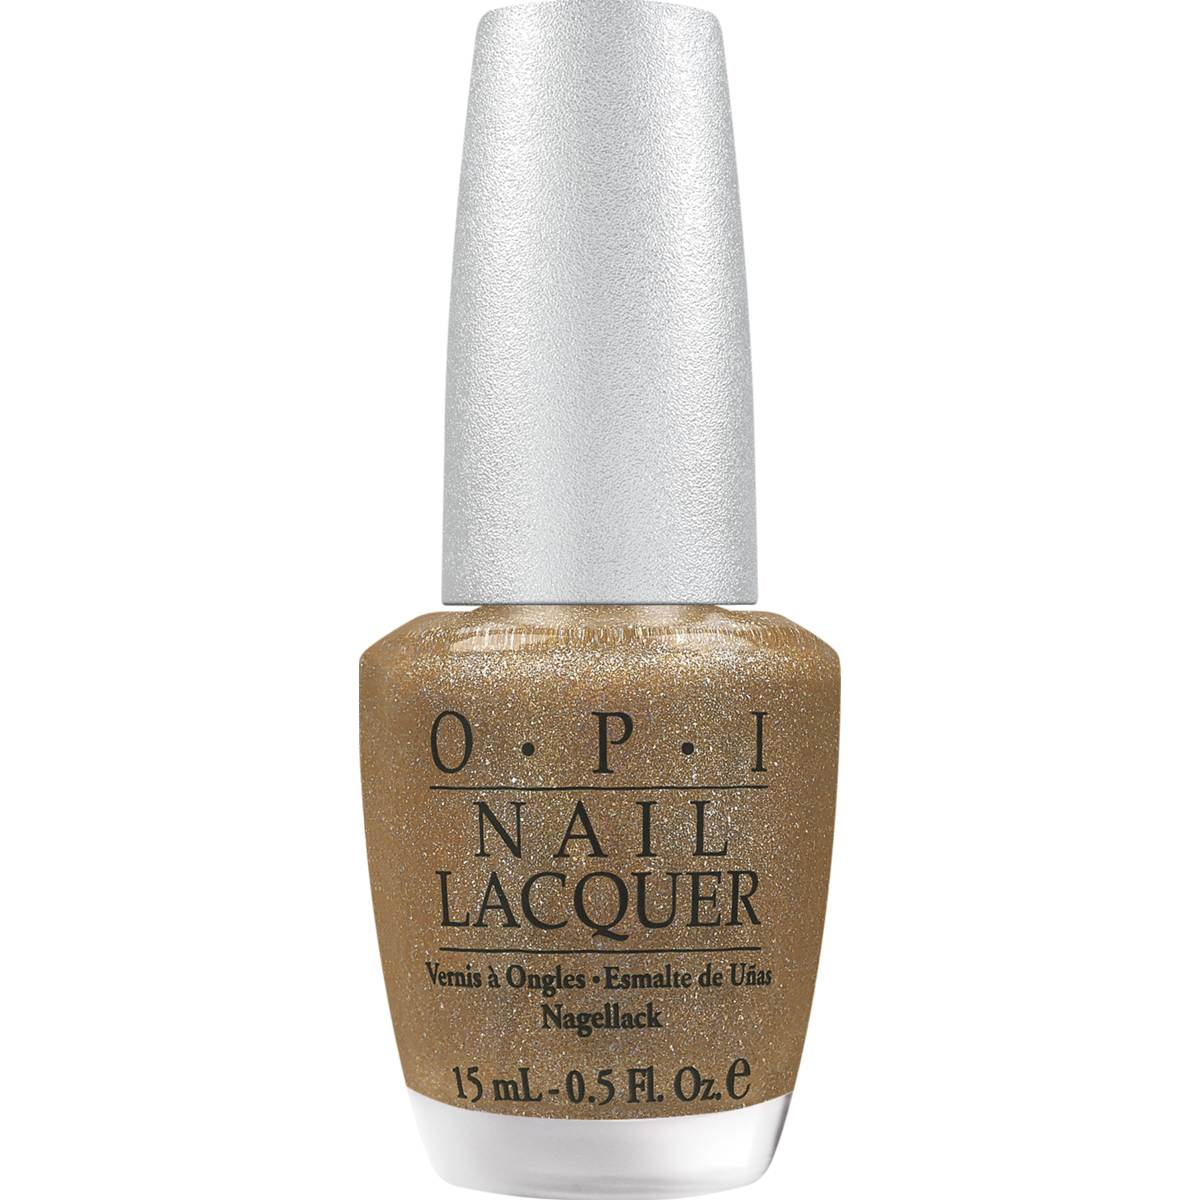 OPI Nail Lacquer, DS Classic